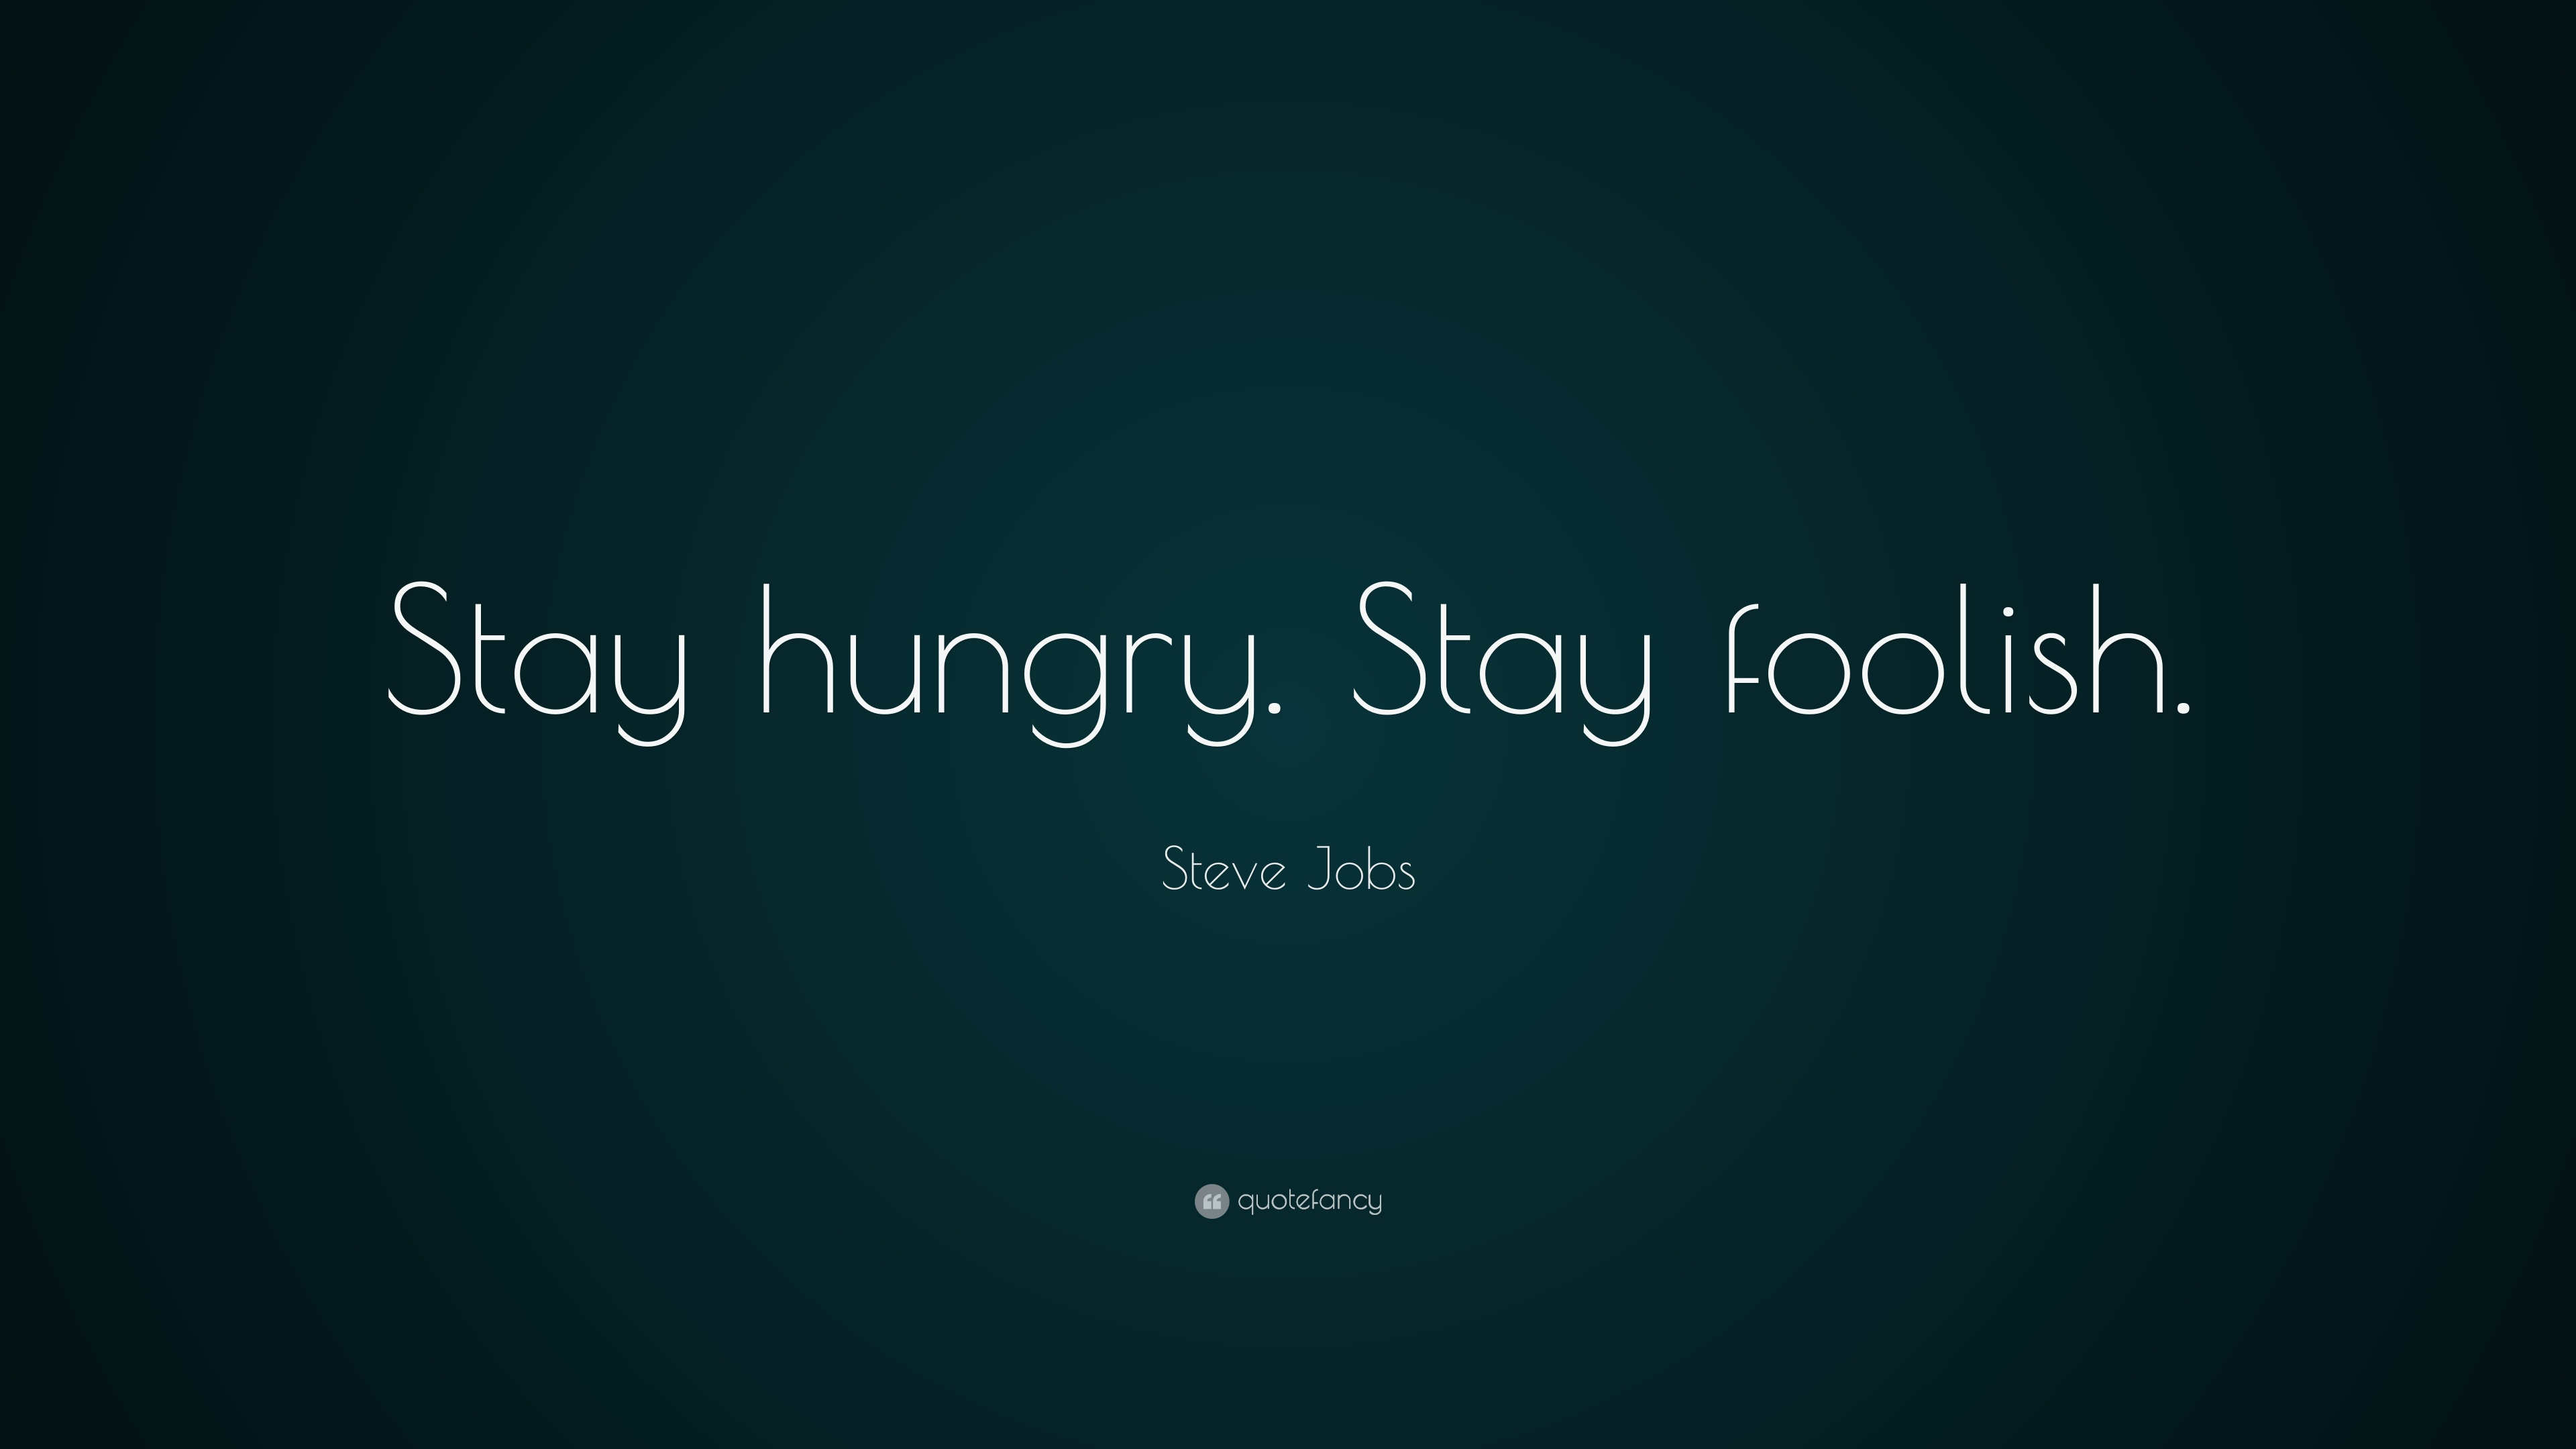 Funny Motivational Wallpapers With Quotes Steve Jobs Quote Stay Hungry Stay Foolish 41